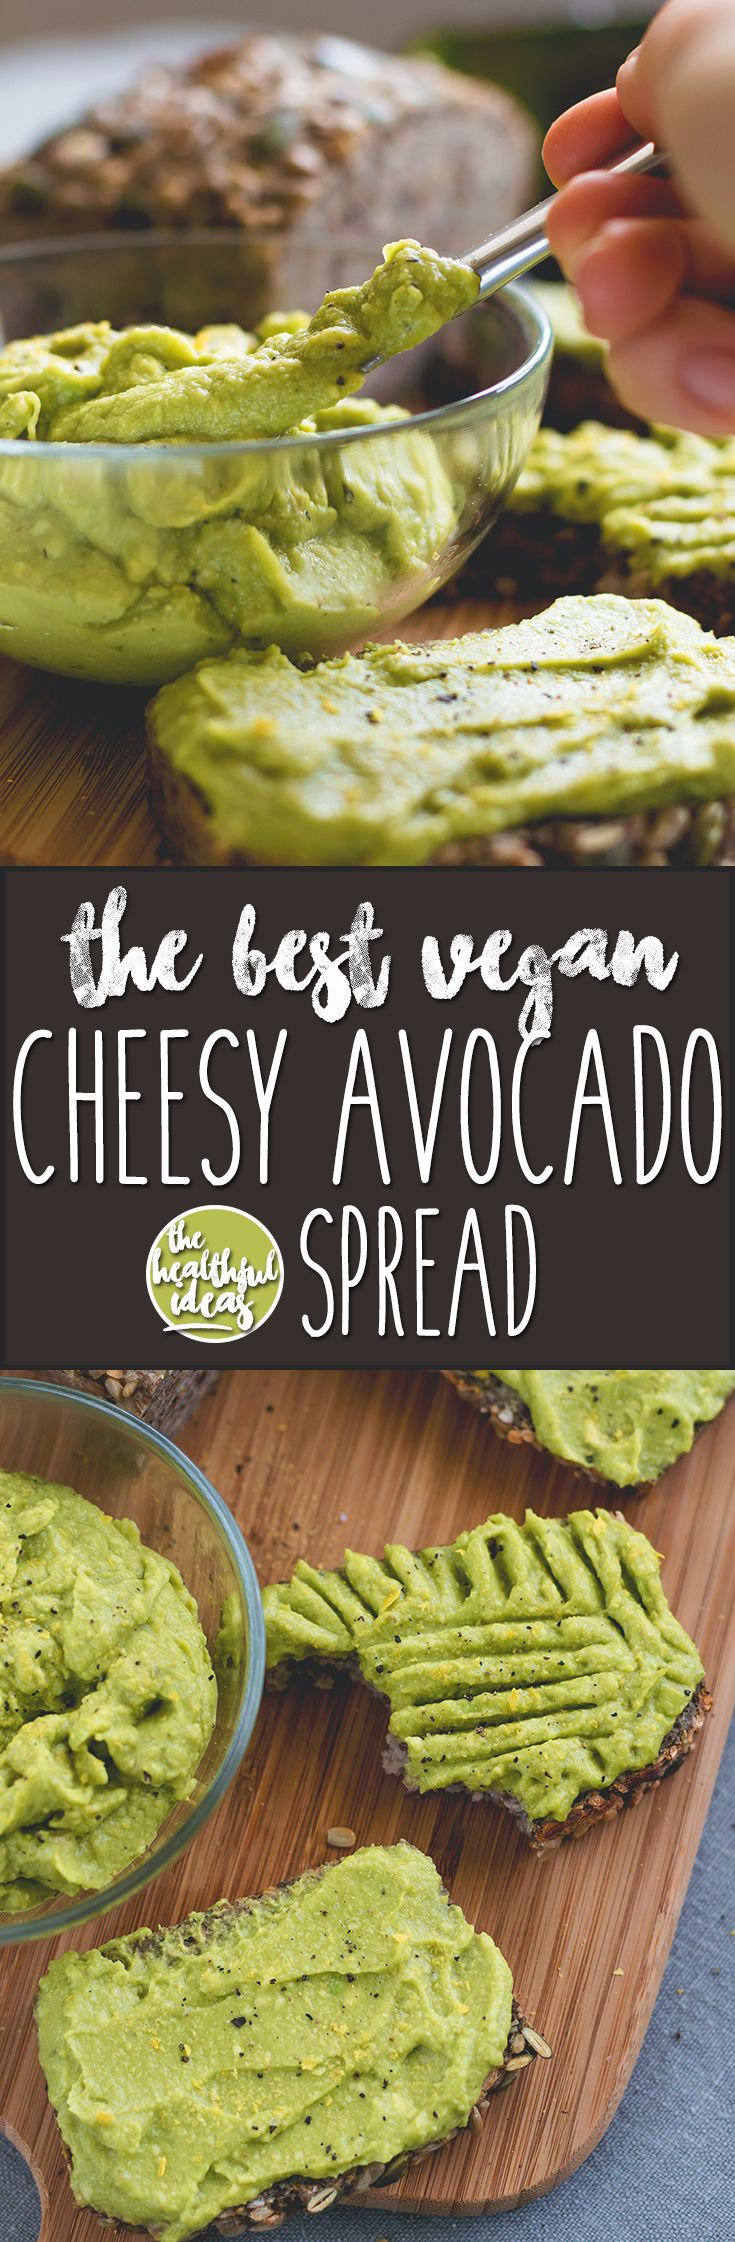 The Best Cheesy Vegan Avocado Spread - healthy and delicious spread you can whip up in a matter of minutes. I love this recipe! Avocado, nutritional yeast, and spices - nothing more! vegan & gluten-free | thehealthfulideas.com